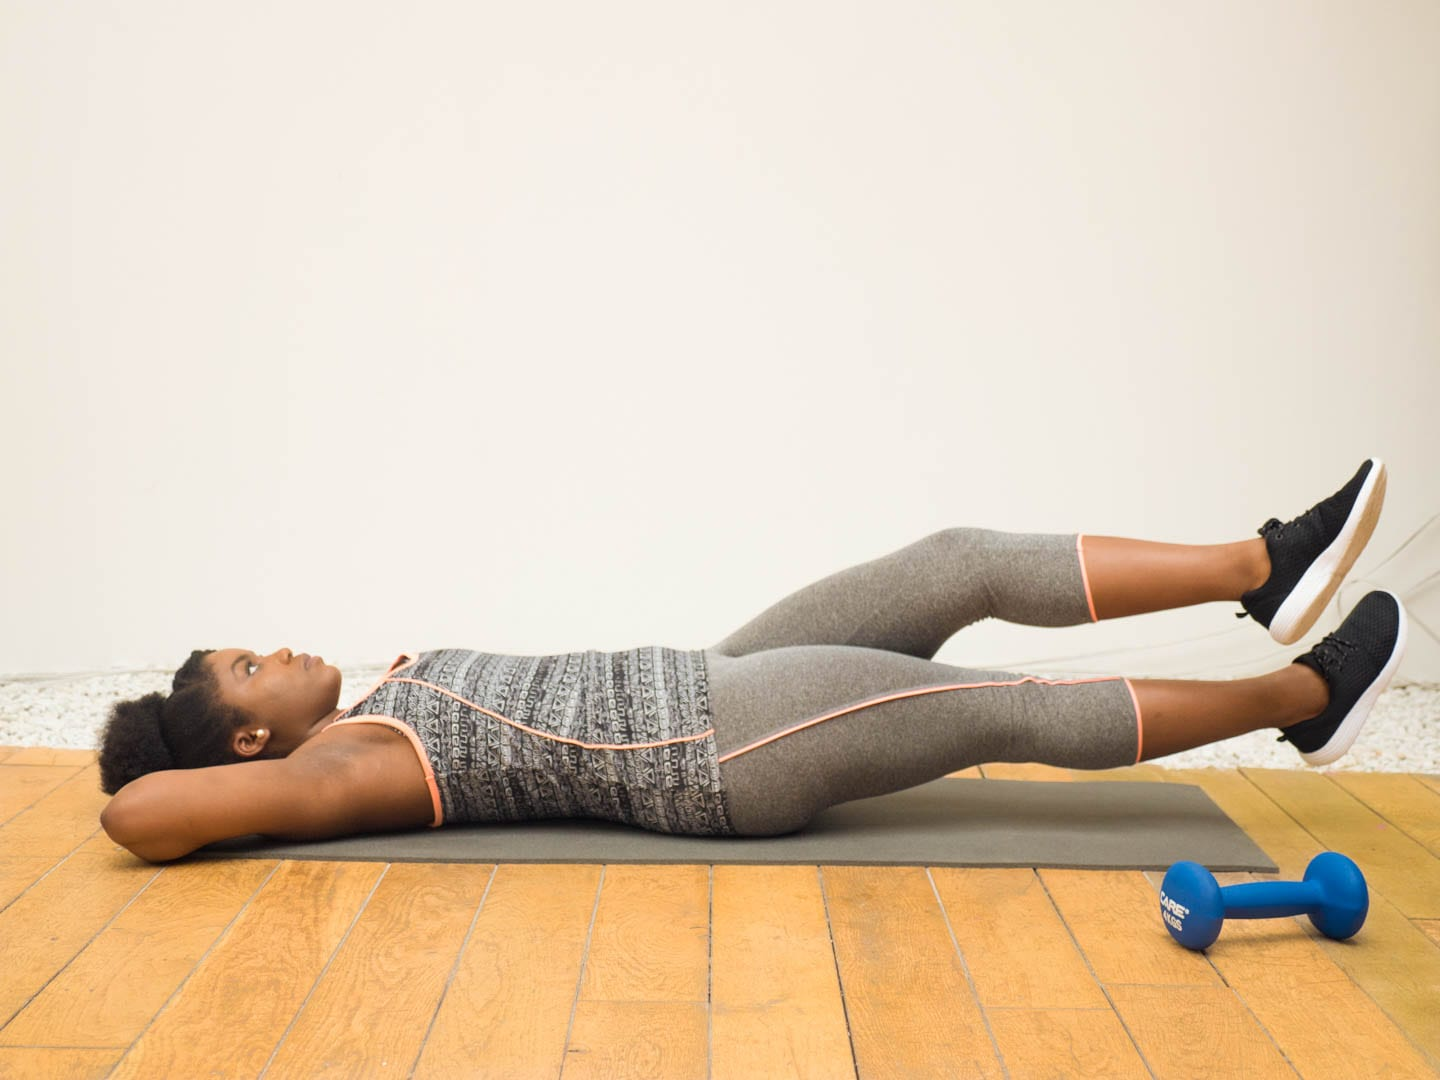 exercice-ciseaux-jambes-croisees